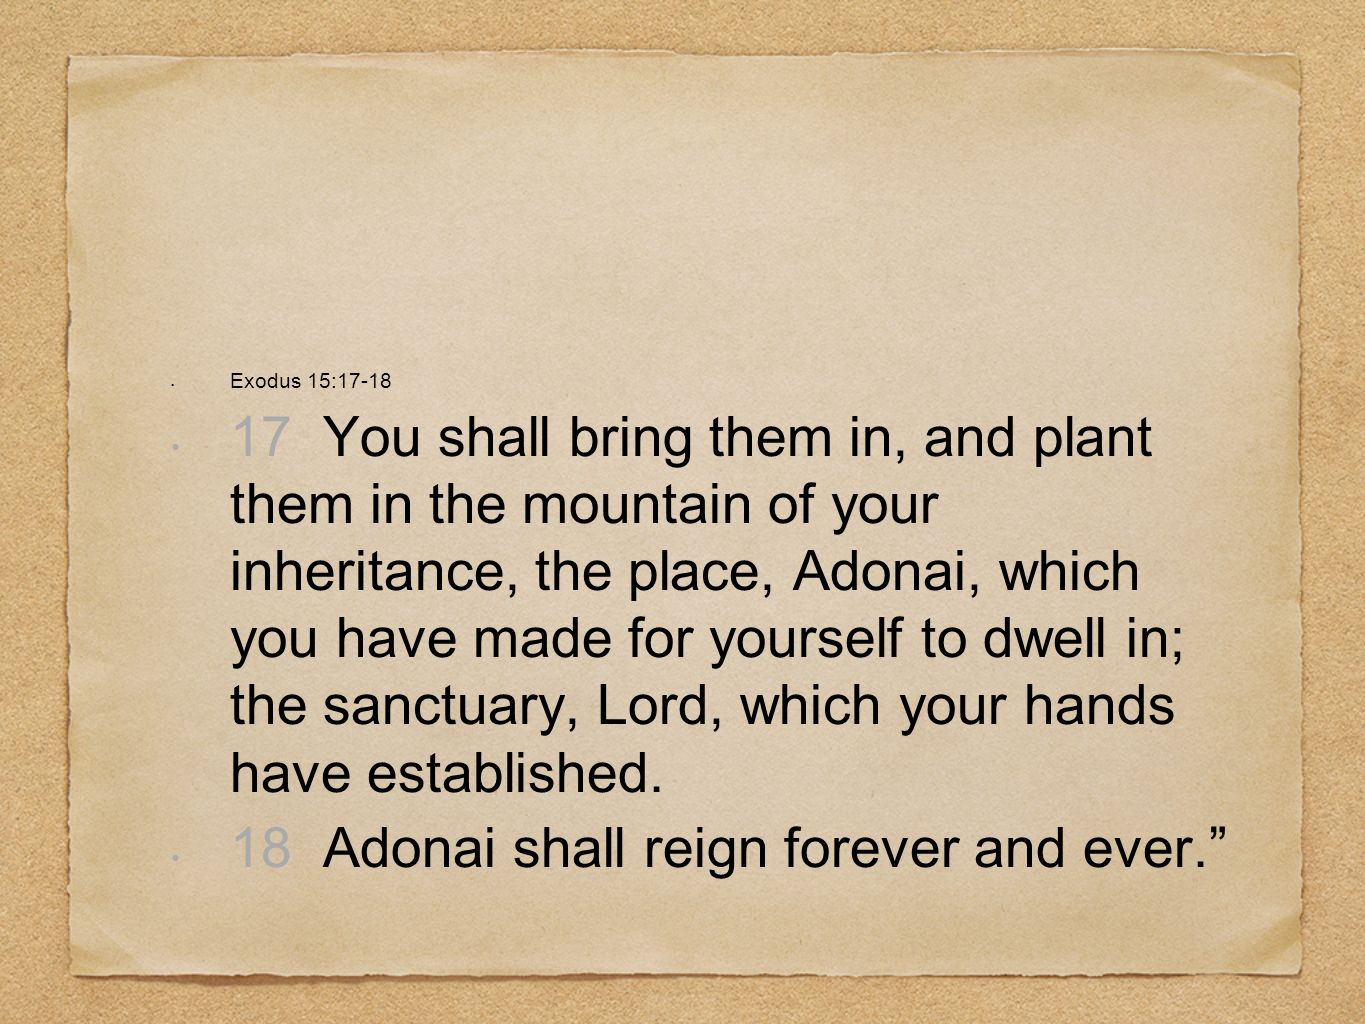 Exodus 15:17-18 17 You shall bring them in, and plant them in the mountain of your inheritance, the place, Adonai, which you have made for yourself to